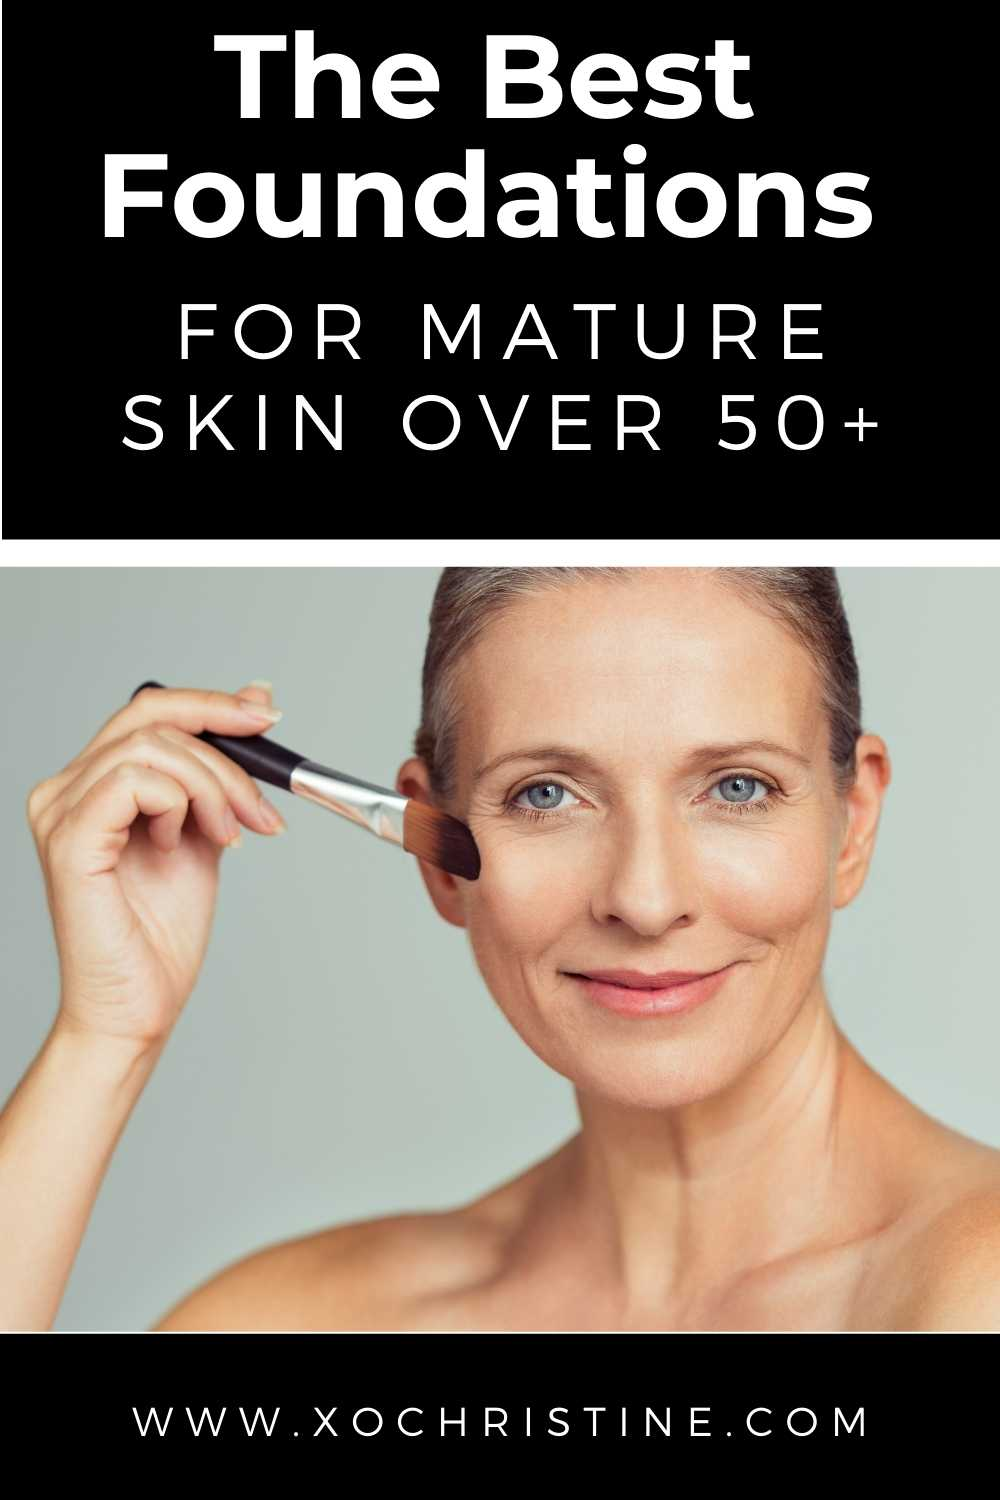 the best foundations for mature skin (women over 40+)